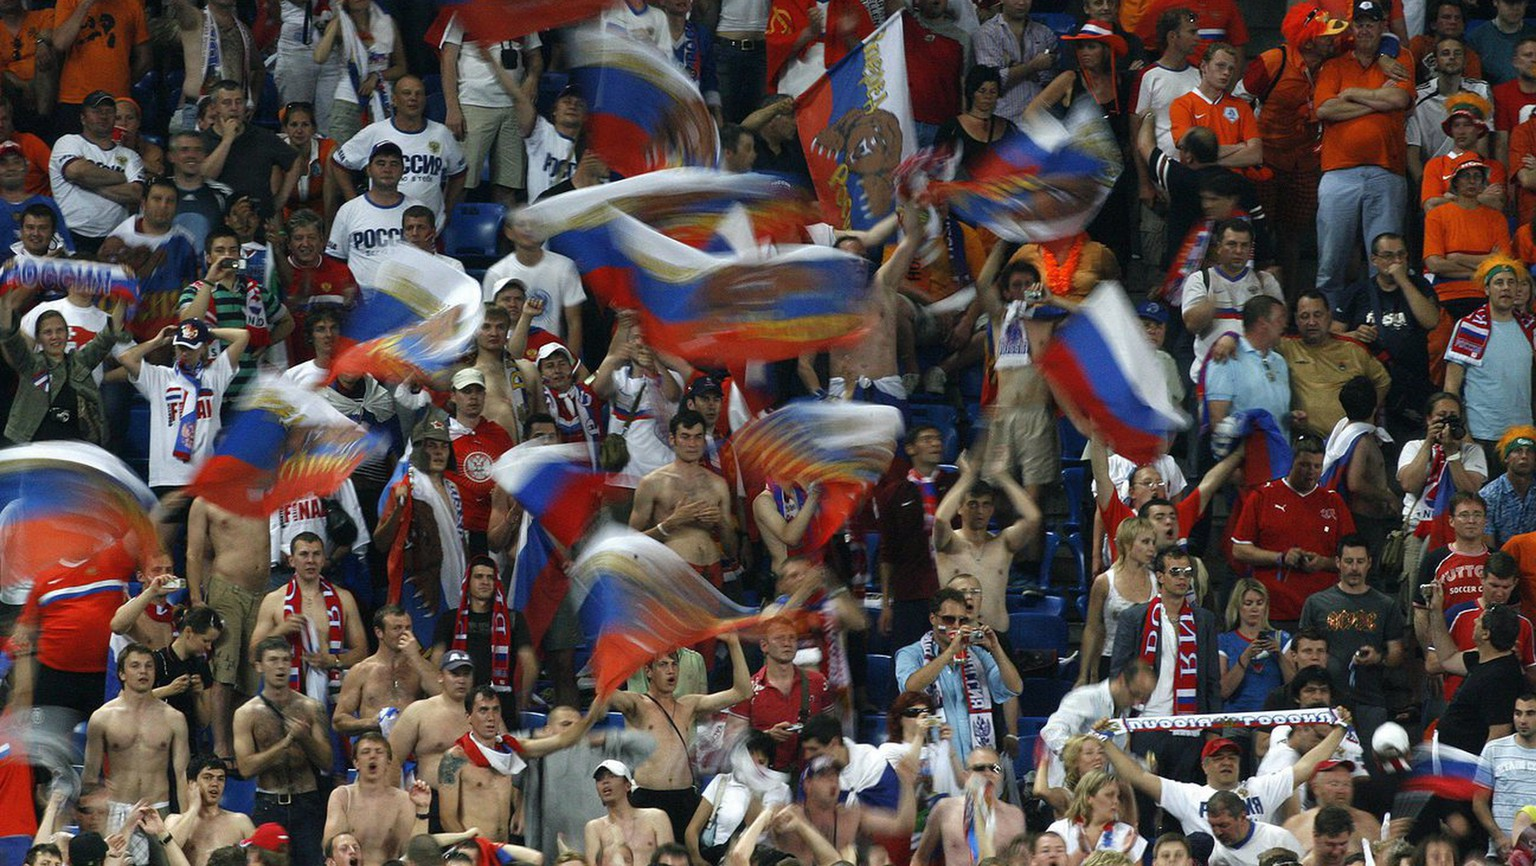 epa01391414 Russian fans cheer during the EURO 2008 Quarter Final match between the Netherlands and Russia at the St Jakob Park stadium, Basel, Switzerland 21 June 2008.  EPA/STEFFEN SCHMIDT  +please note UEFA restrictions particularly in regard to slide shows and 'No Mobile Services'+